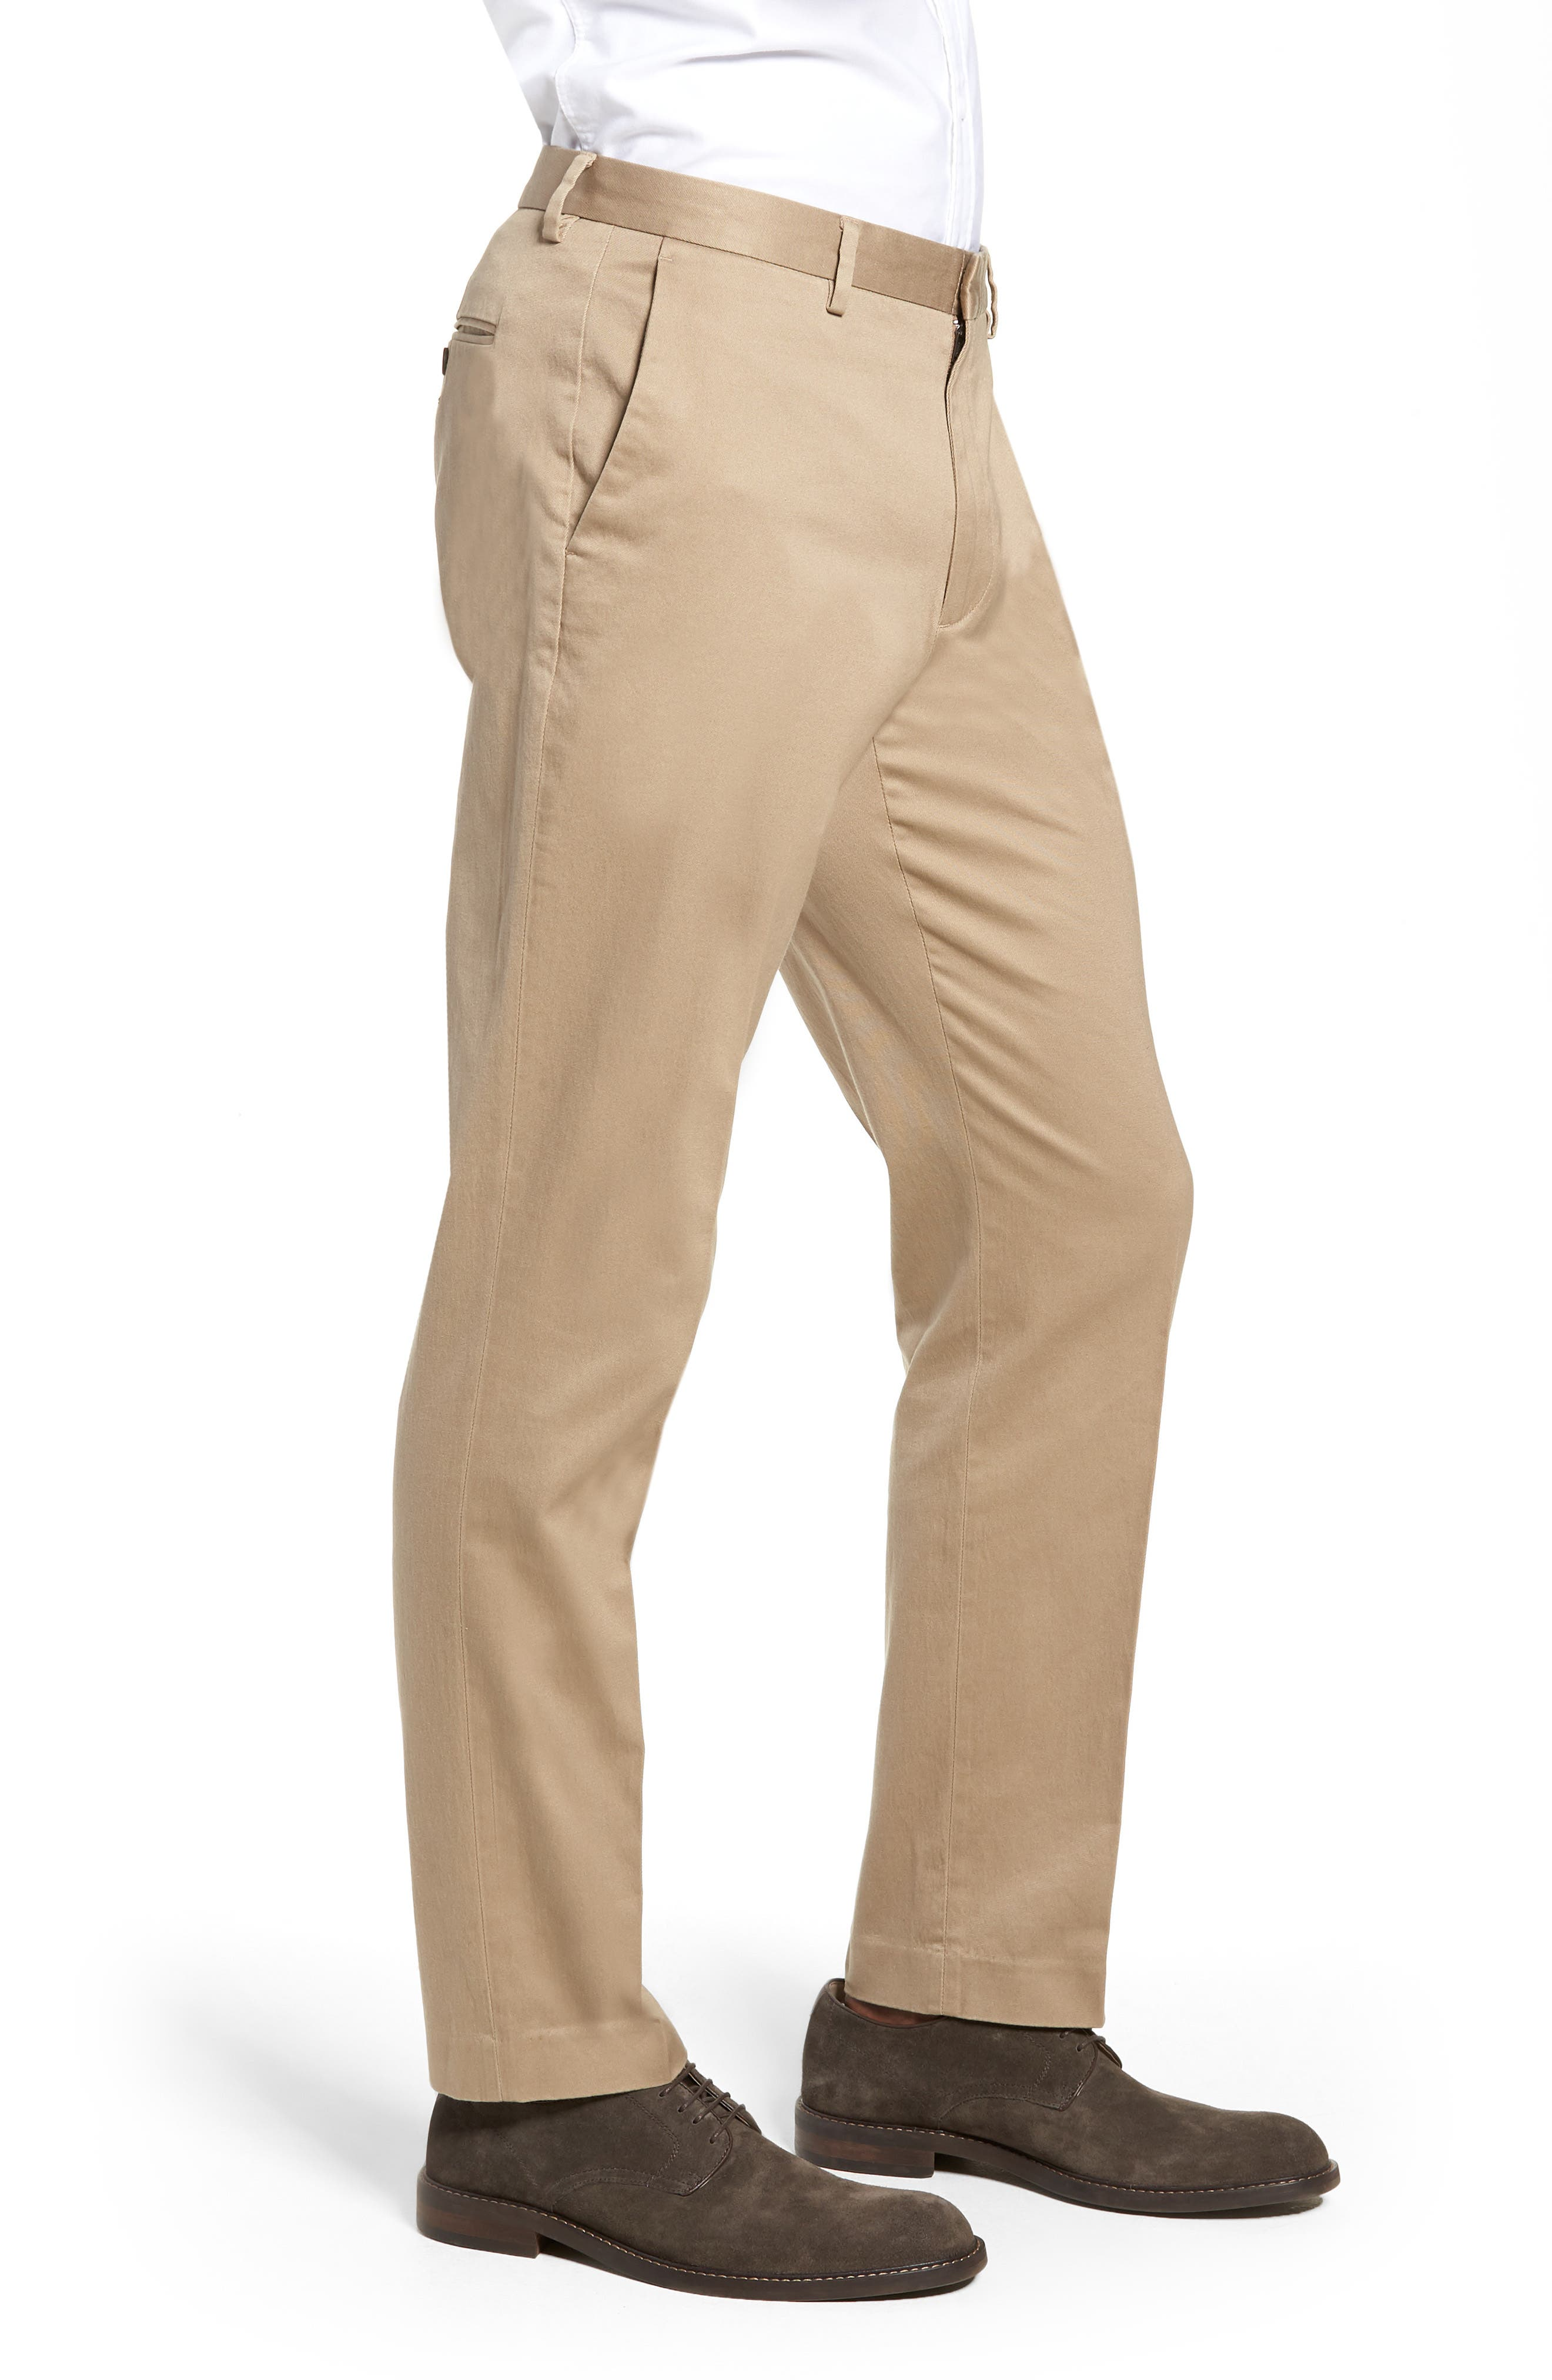 Ludlow Stretch Chino Pants,                             Alternate thumbnail 3, color,                             250